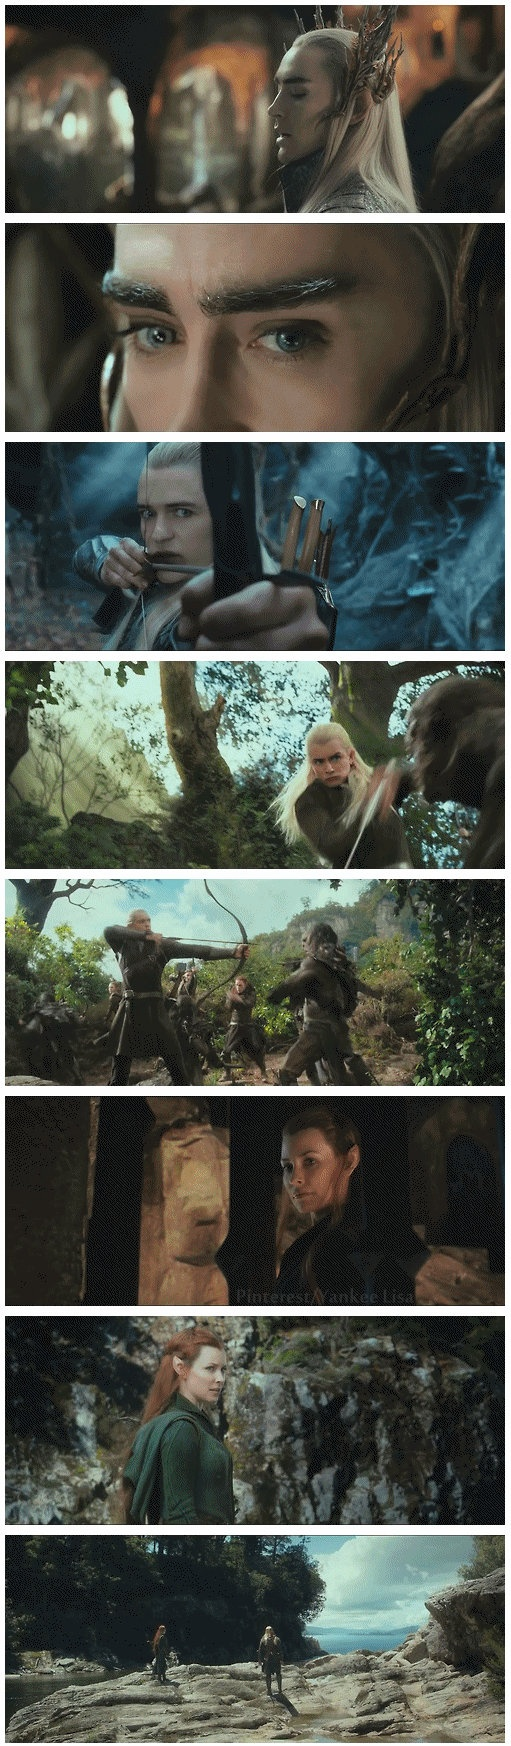 I already mindlessly hate all of them except Legolas, who is cool in LOTR, and Tauriel, who appears to be pro-Dwarf. NO ONE SHOOTS AT MY DWARVES!